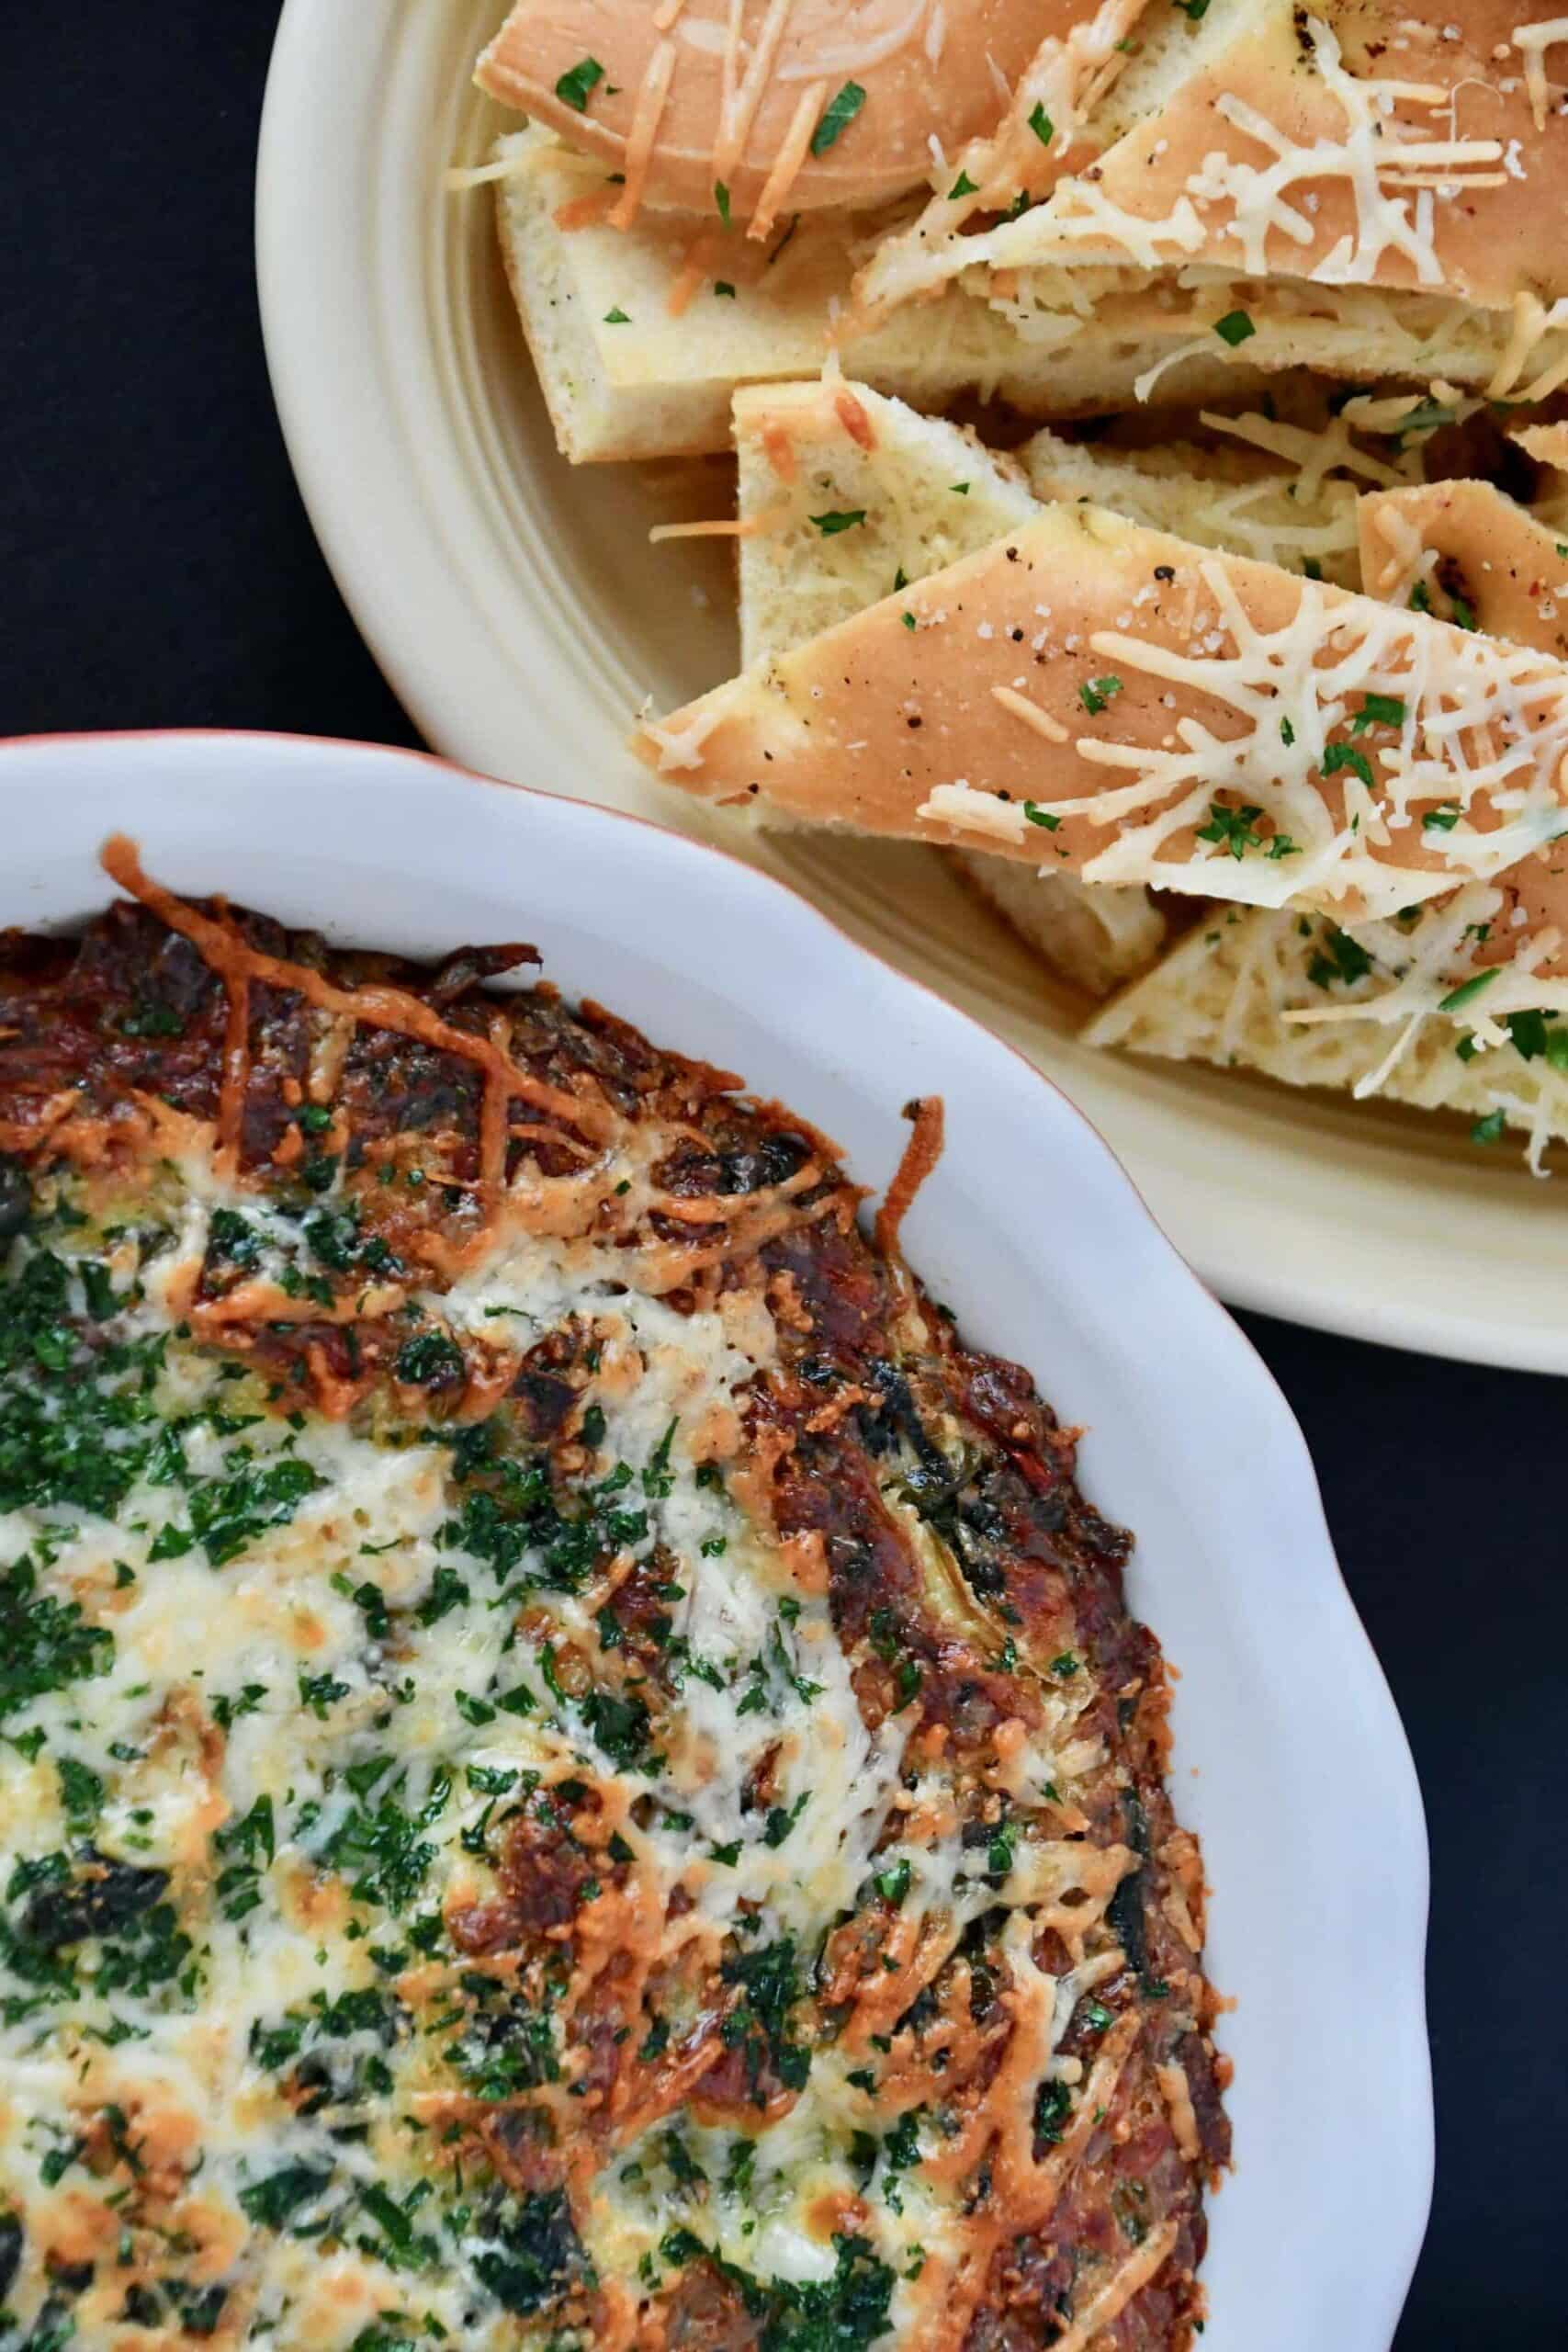 Baked Spinach And Artichoke Dip With Garlic Toast The Perfect Party Take Along Kendellkreations